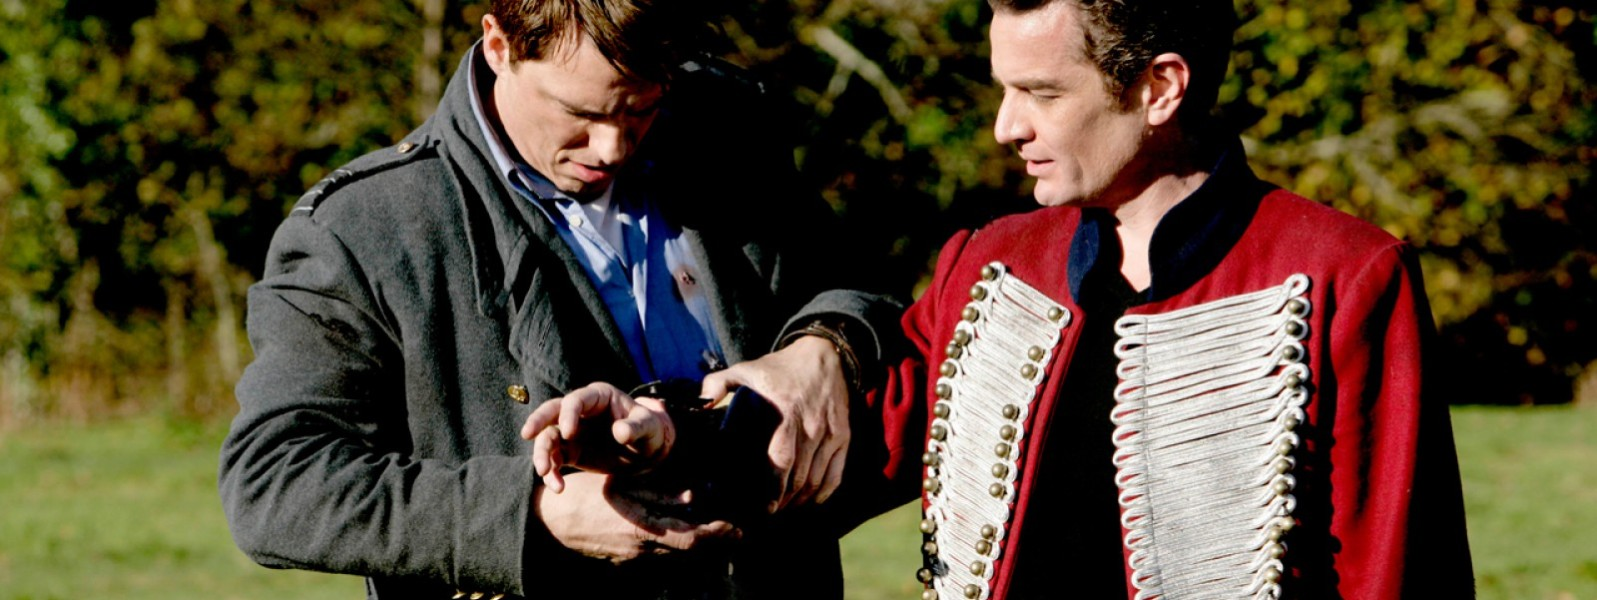 torchwood_213